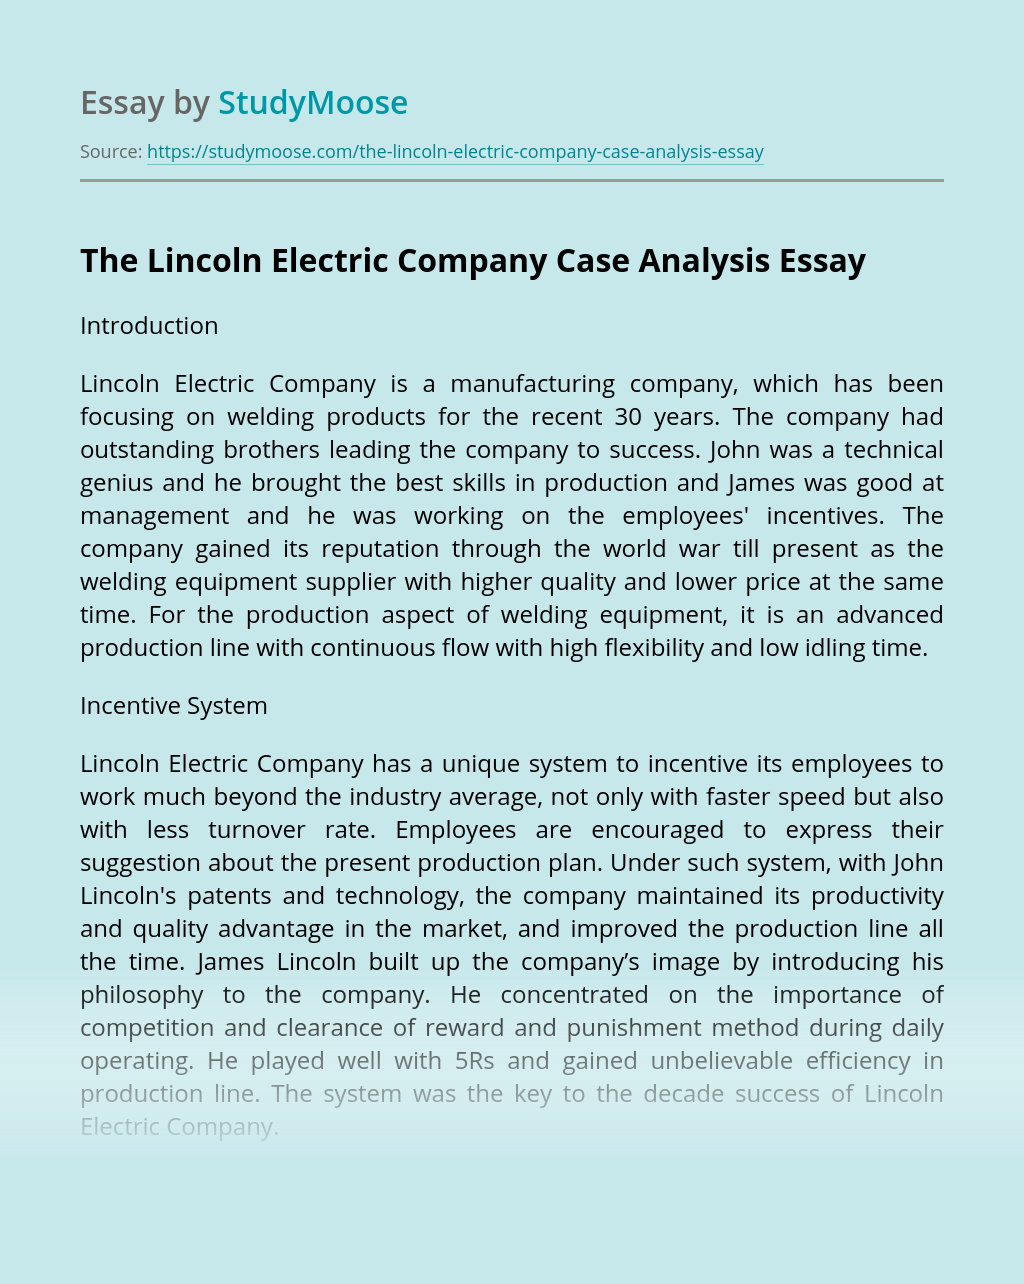 The Lincoln Electric Company Case Analysis